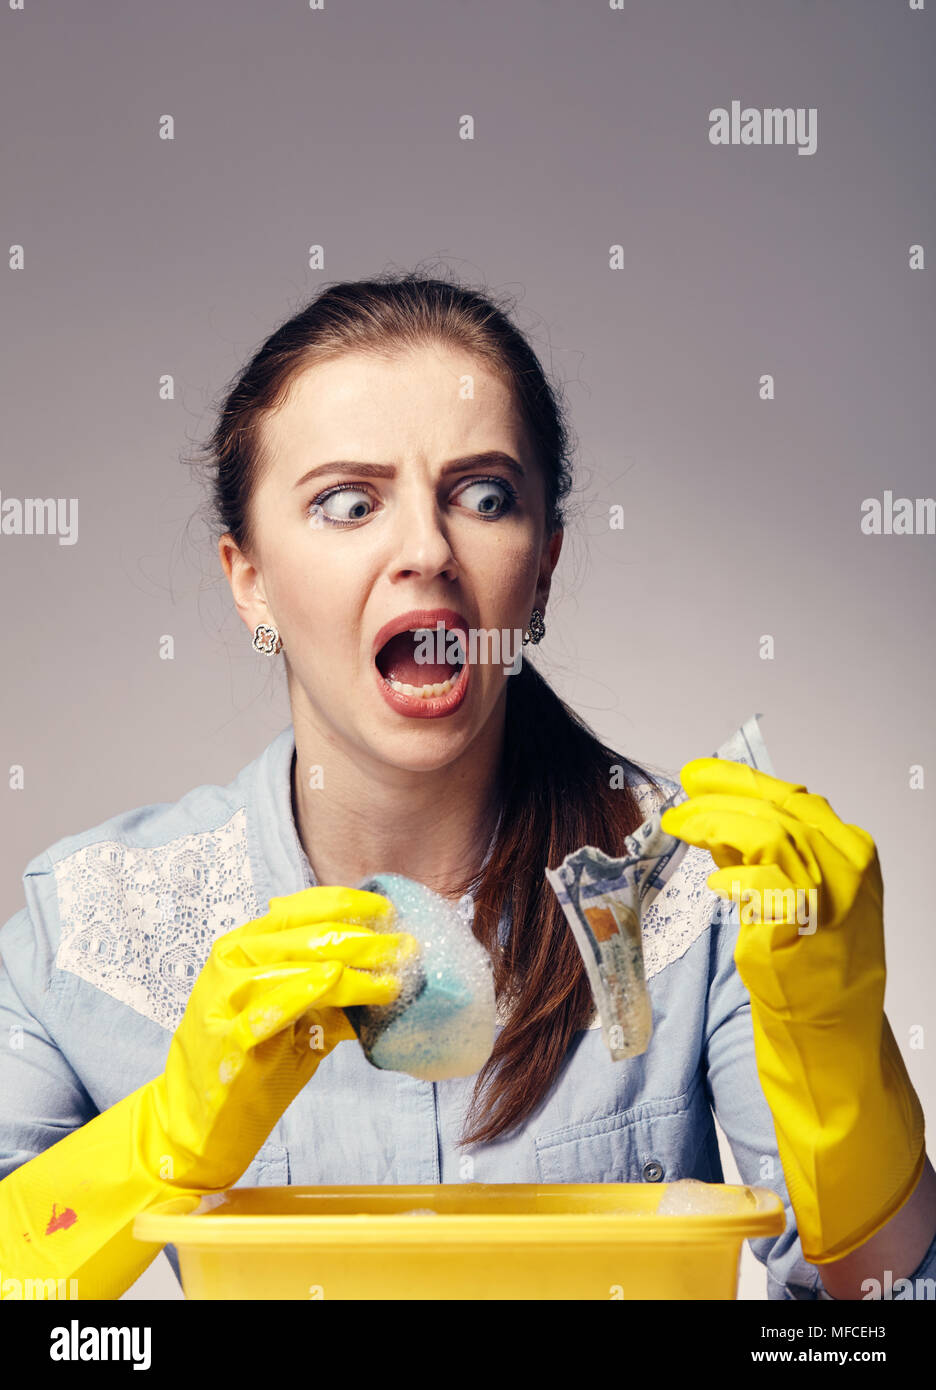 conceptual image on which the woman launder shady money - Stock Image